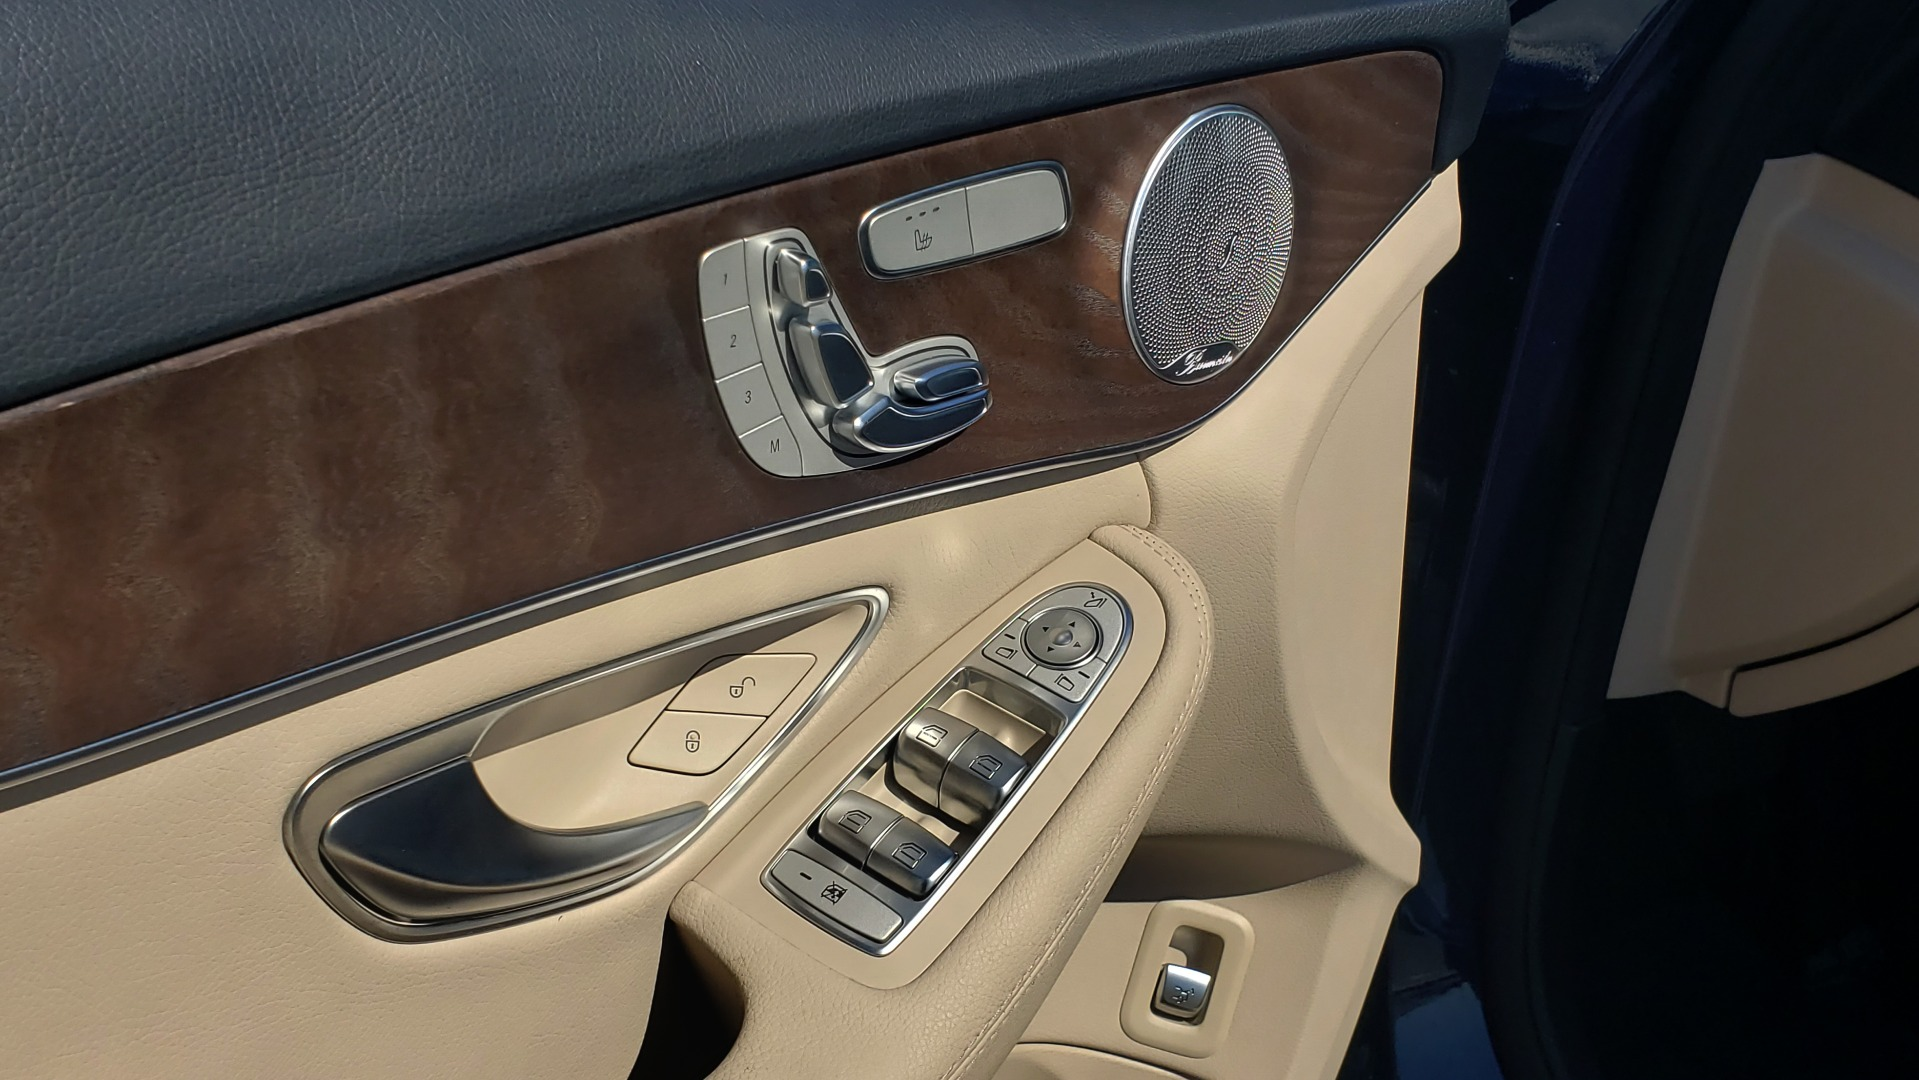 Used 2018 Mercedes-Benz C-CLASS C 300 PREMIUM / SUNROOF / BURMESTER / BSM / REARVIEW for sale $23,995 at Formula Imports in Charlotte NC 28227 27